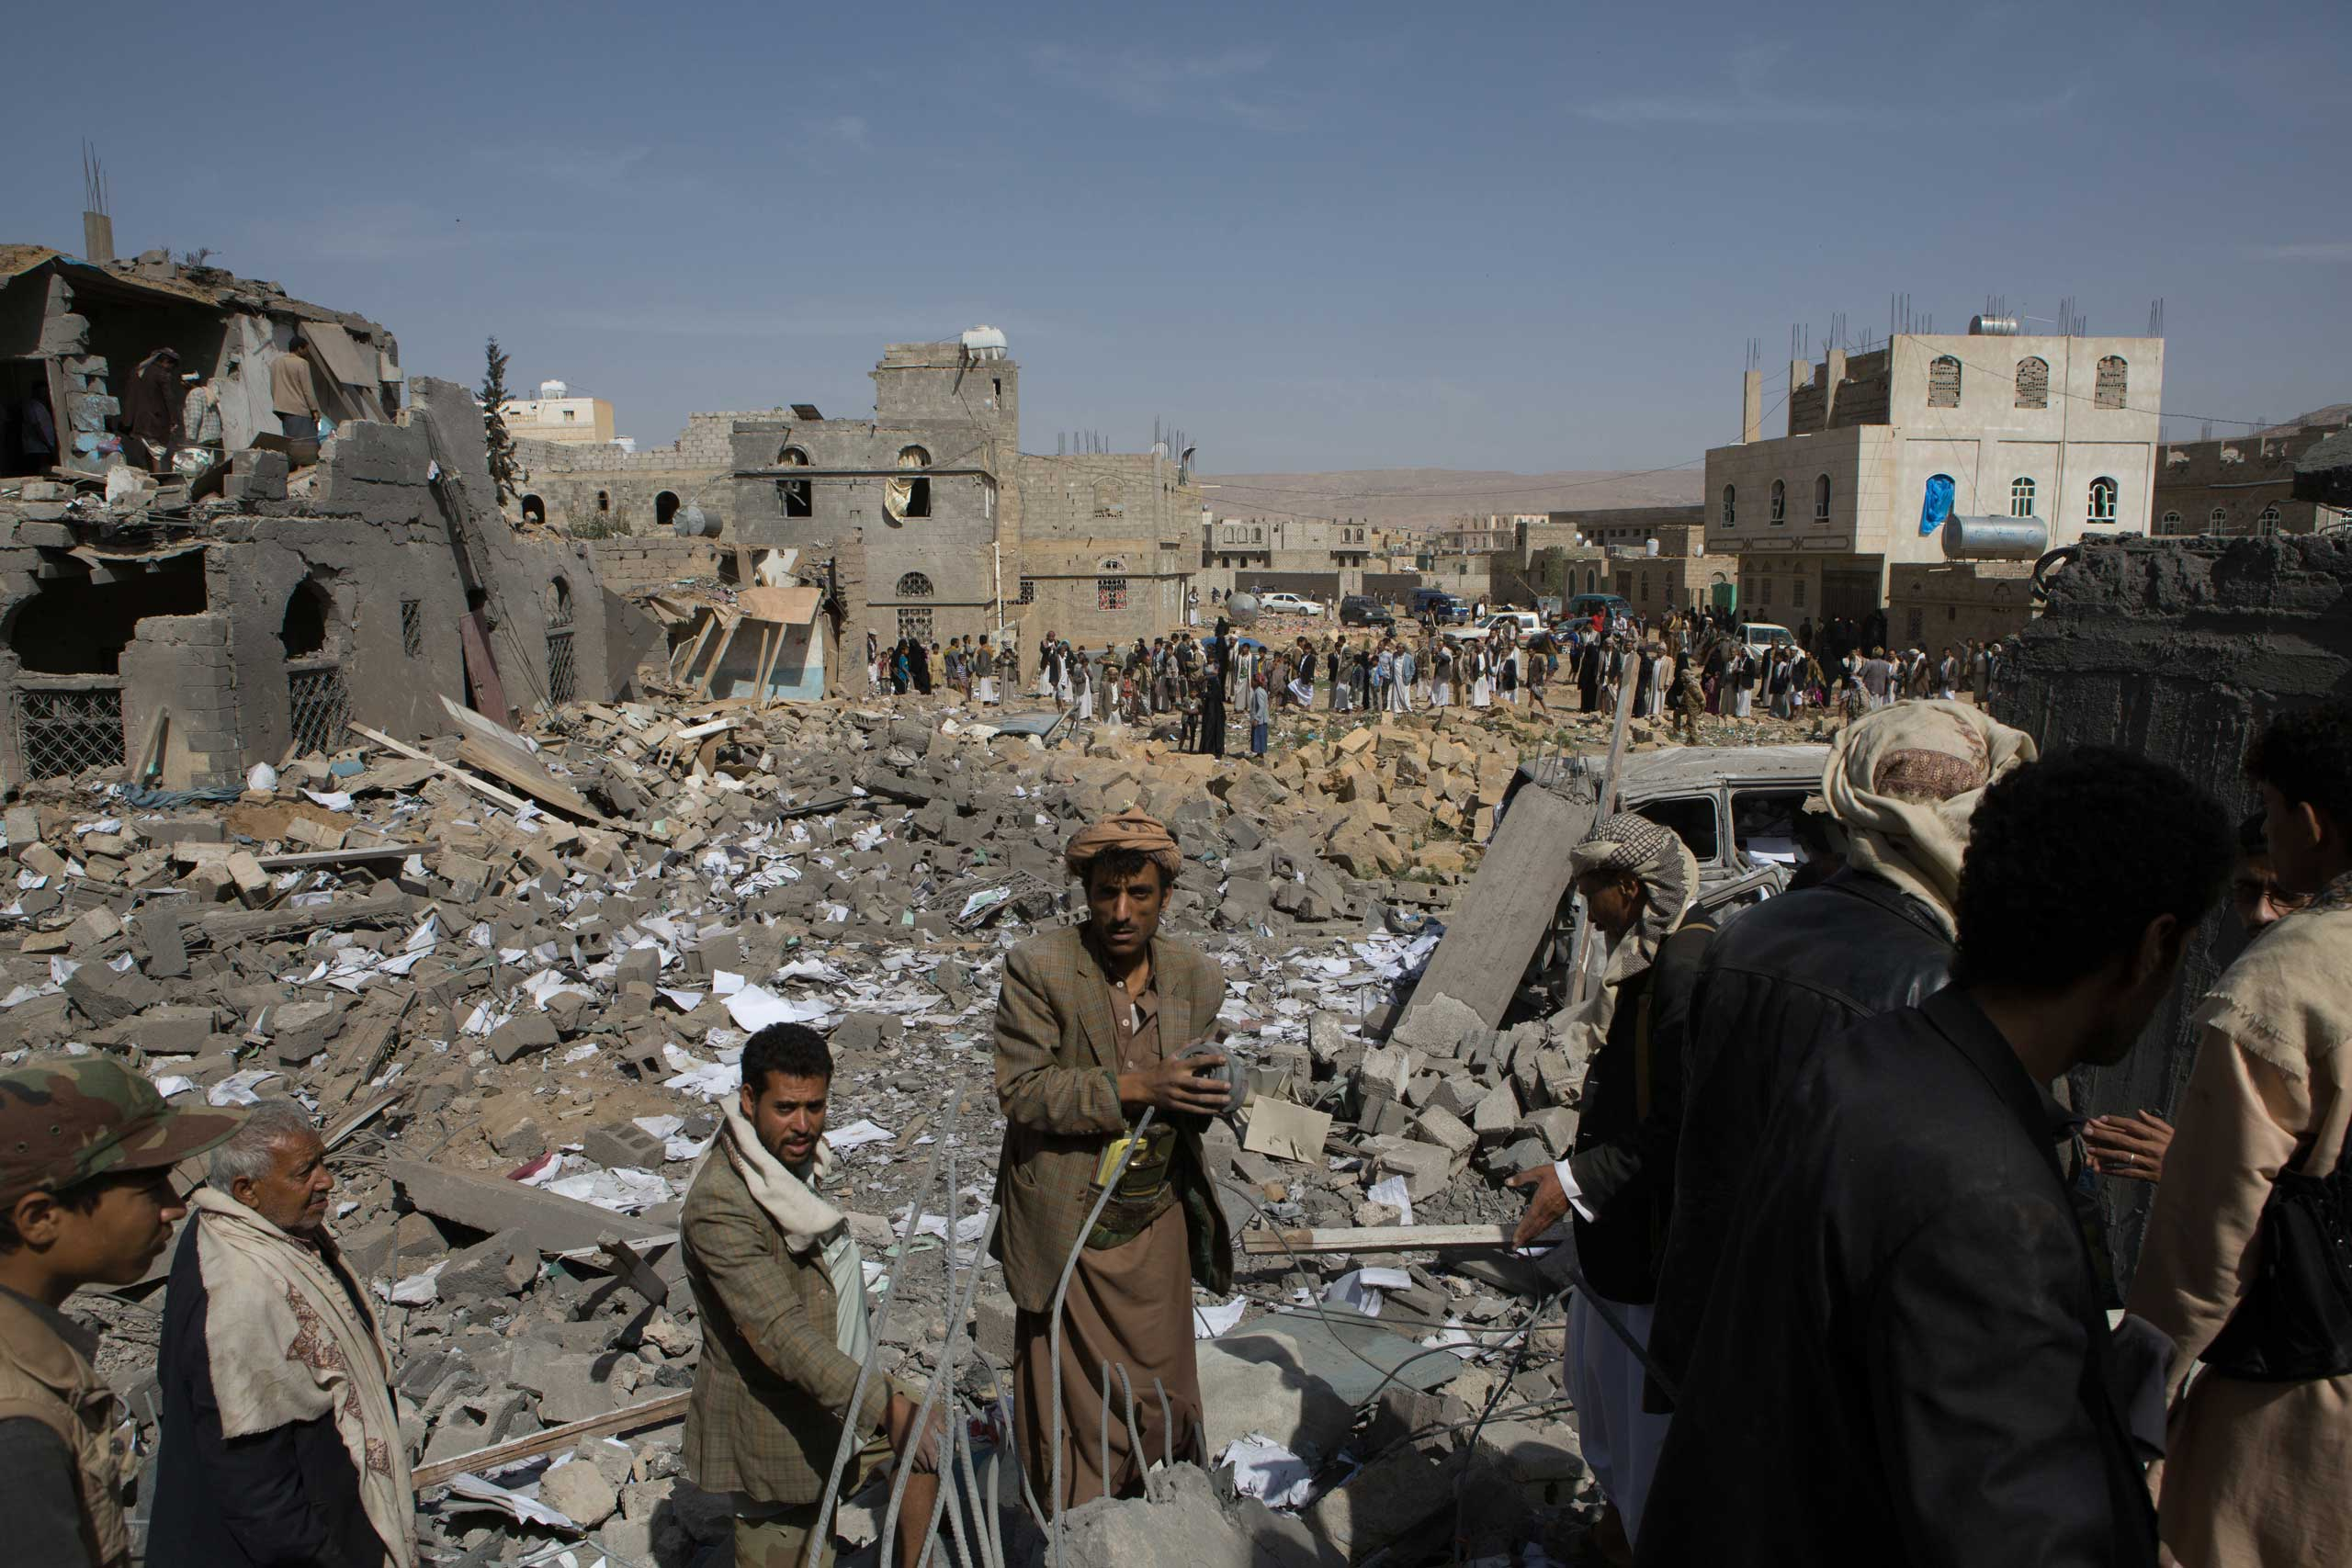 Men stand on the rubble of a building destroyed by a Saudi airstrike in Amran, 50 km from the capital city Sanaa. Eleven civilians were killed, Aug. 19, 2015.